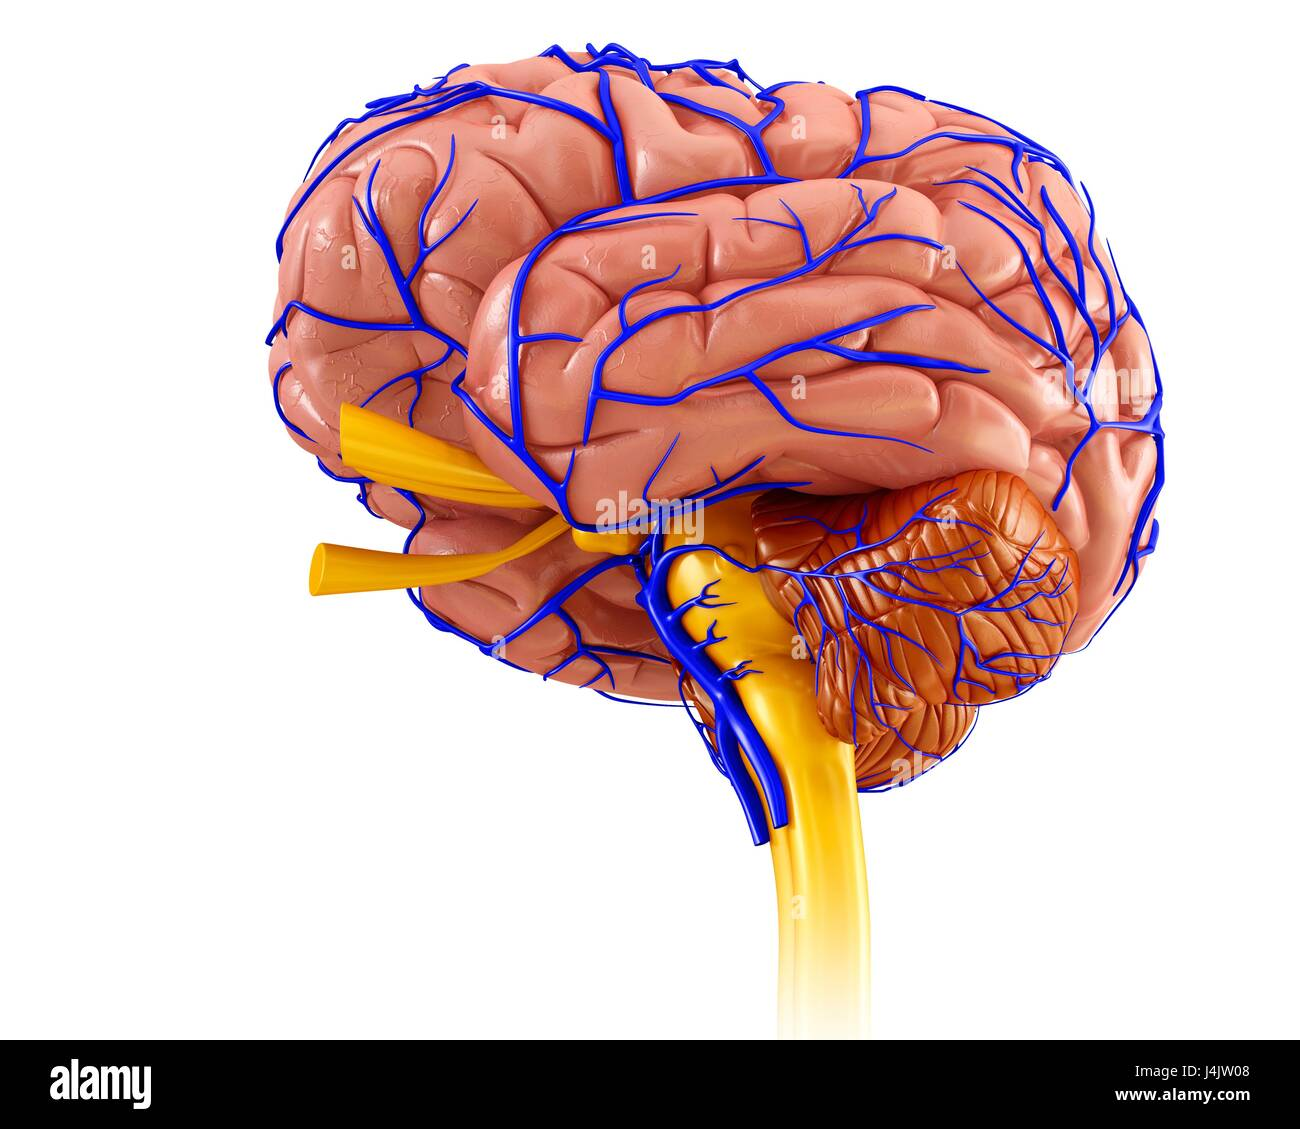 Brain Veins And Anatomy Stock Photos & Brain Veins And Anatomy Stock ...